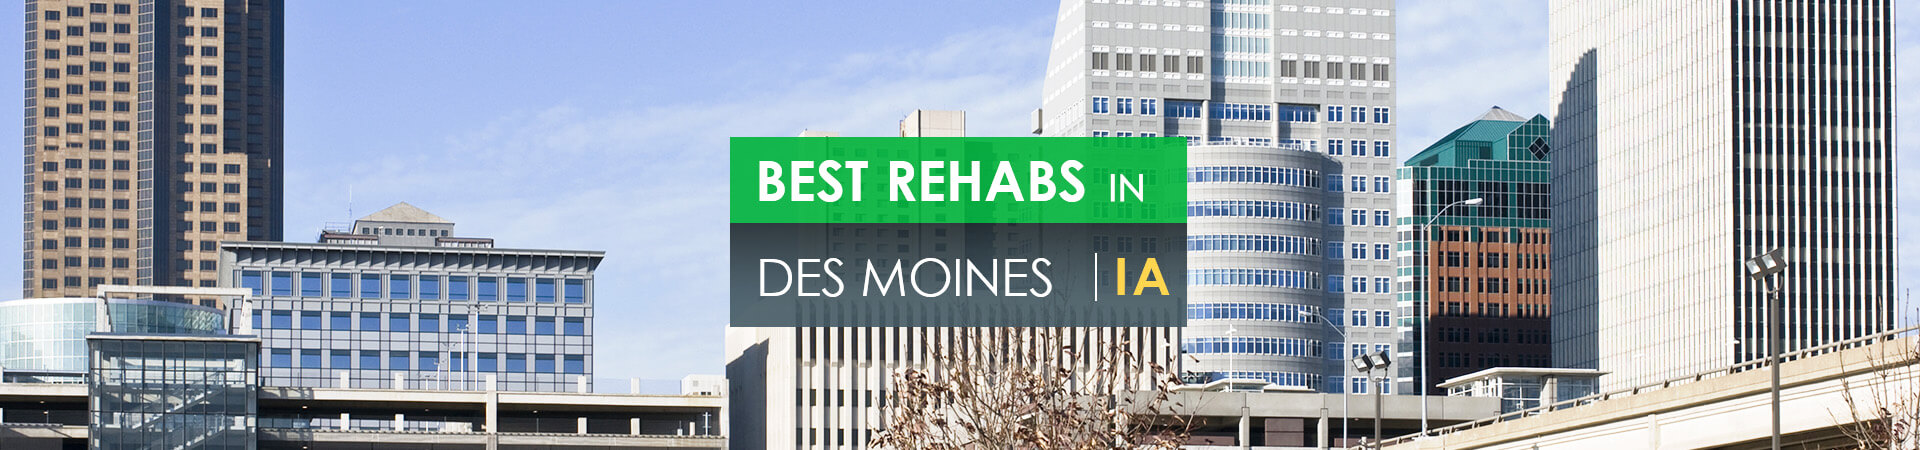 Best rehabs in Des Moines, IA